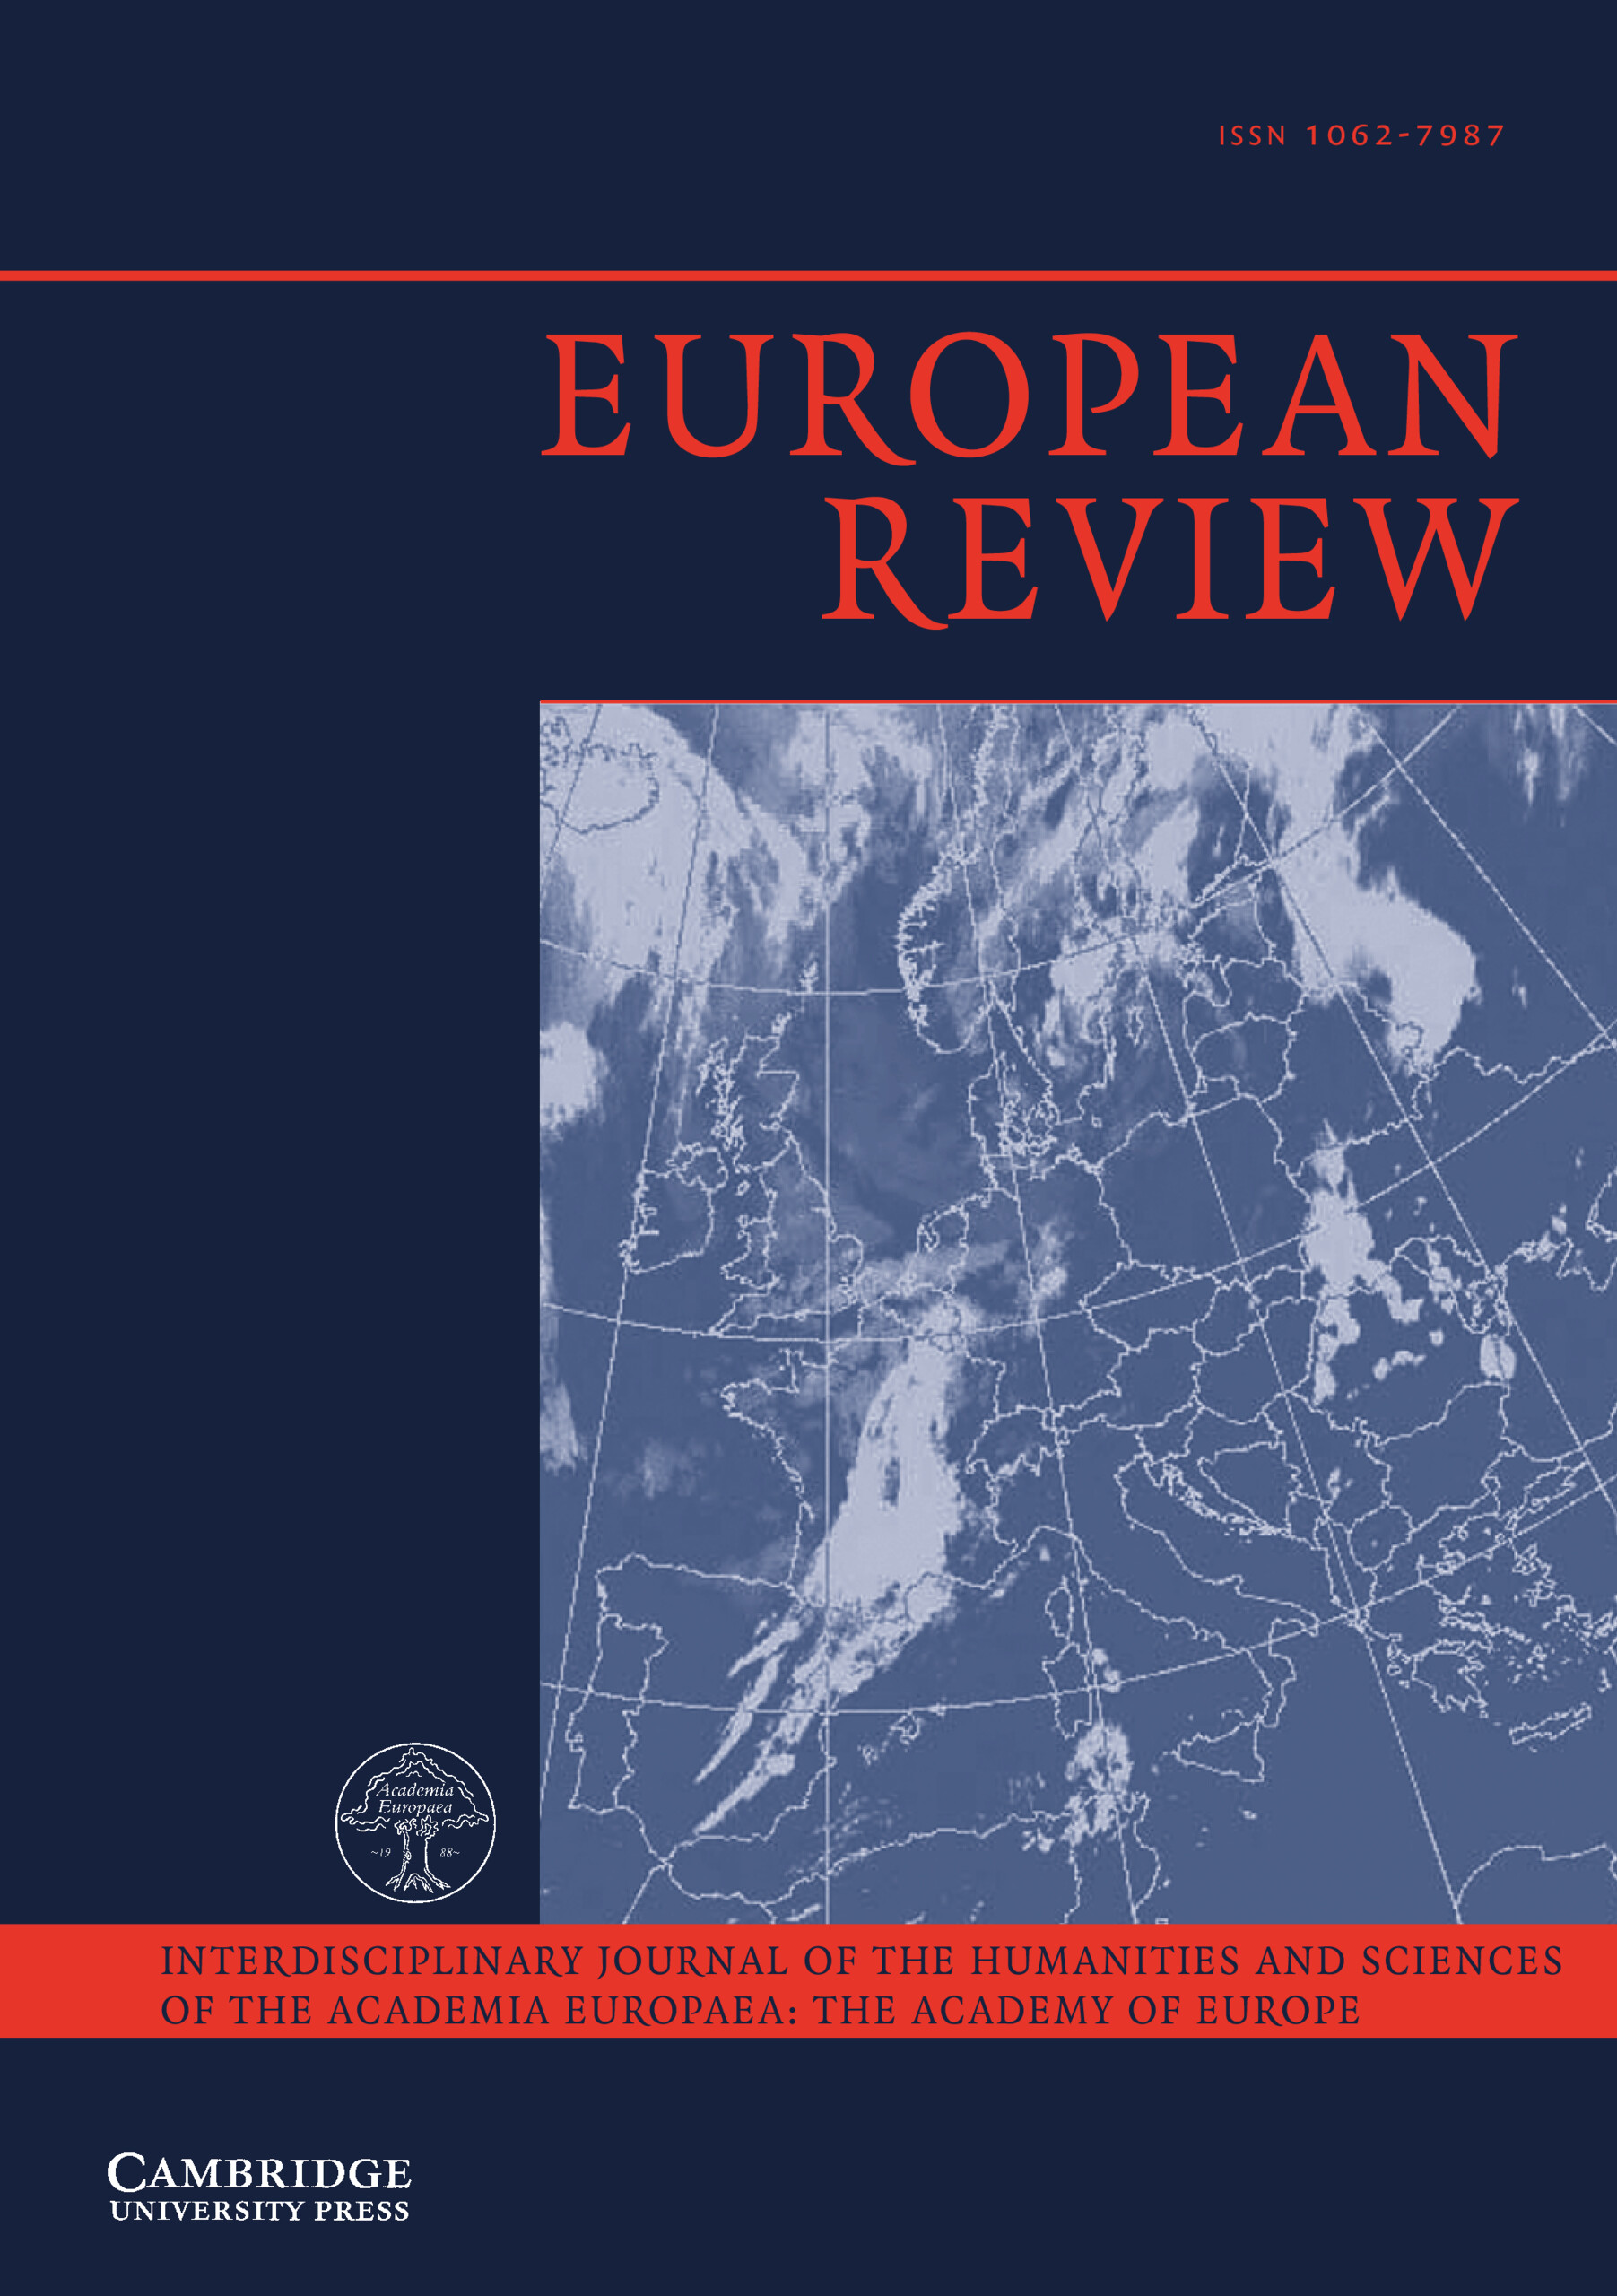 https://static.cambridge.org/covers/ERW_0_0_0/european_review.jpg?send-full-size-image=true